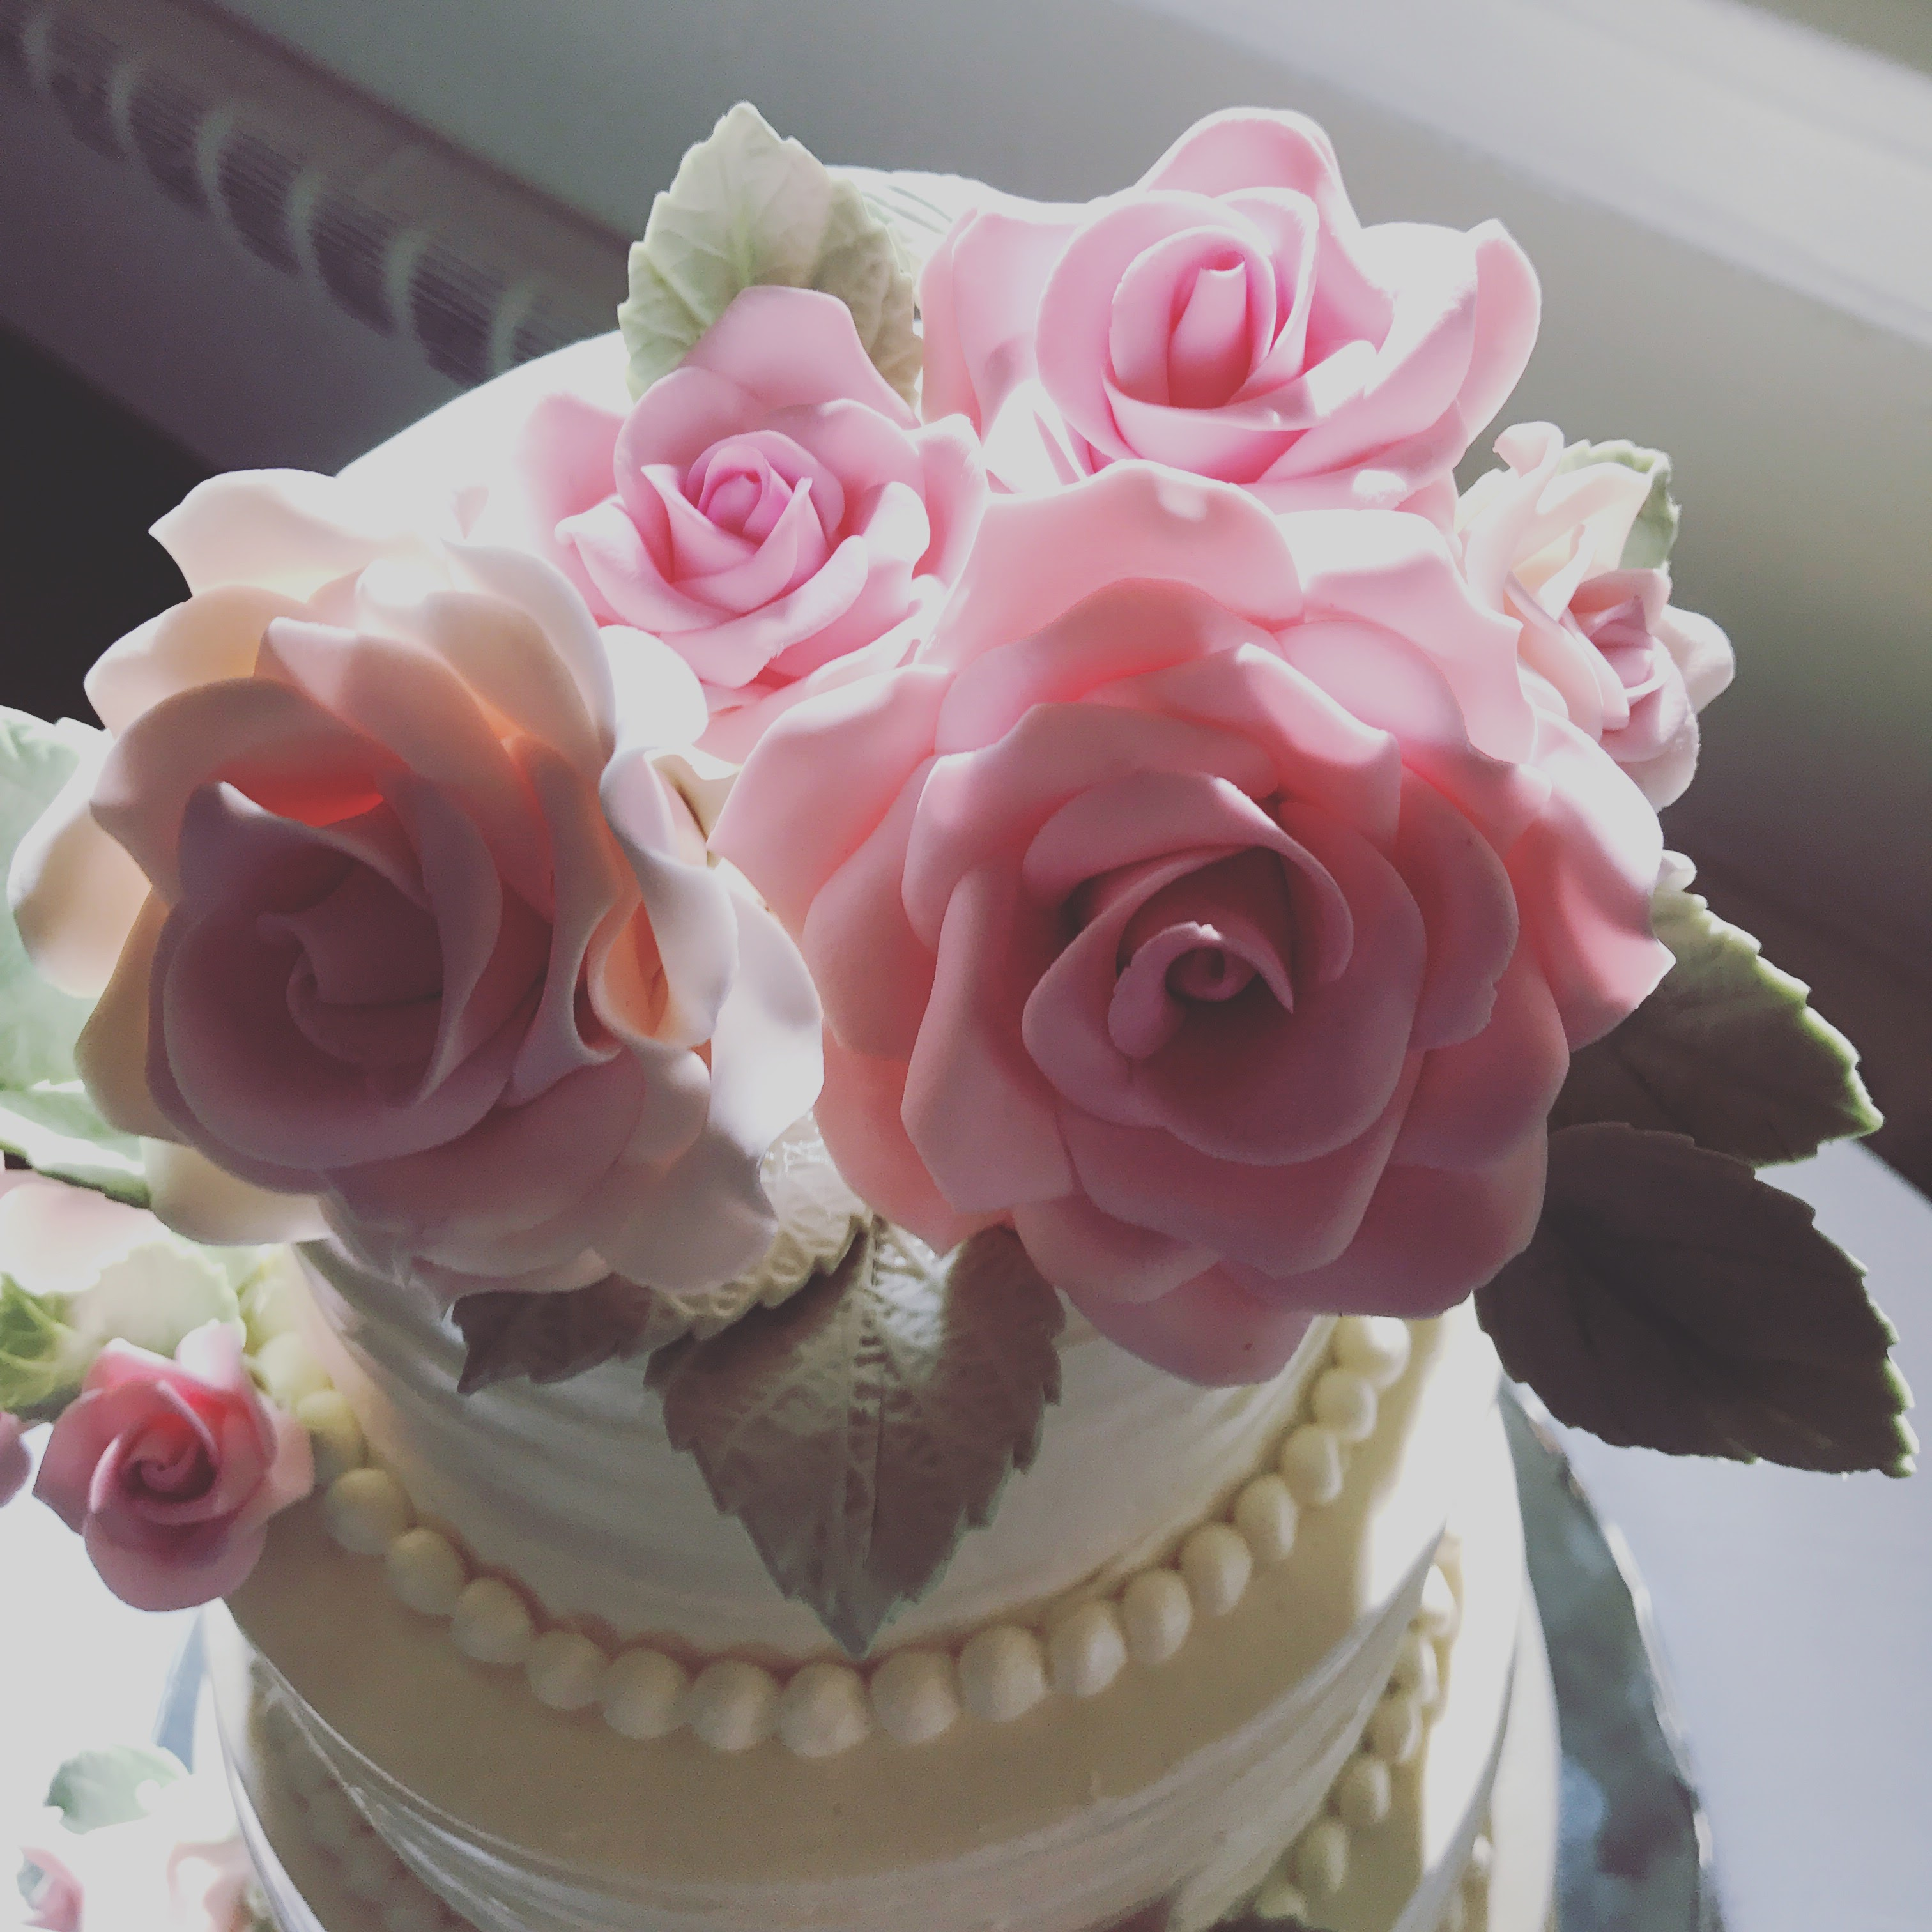 Sugarpaste Roses from L & D